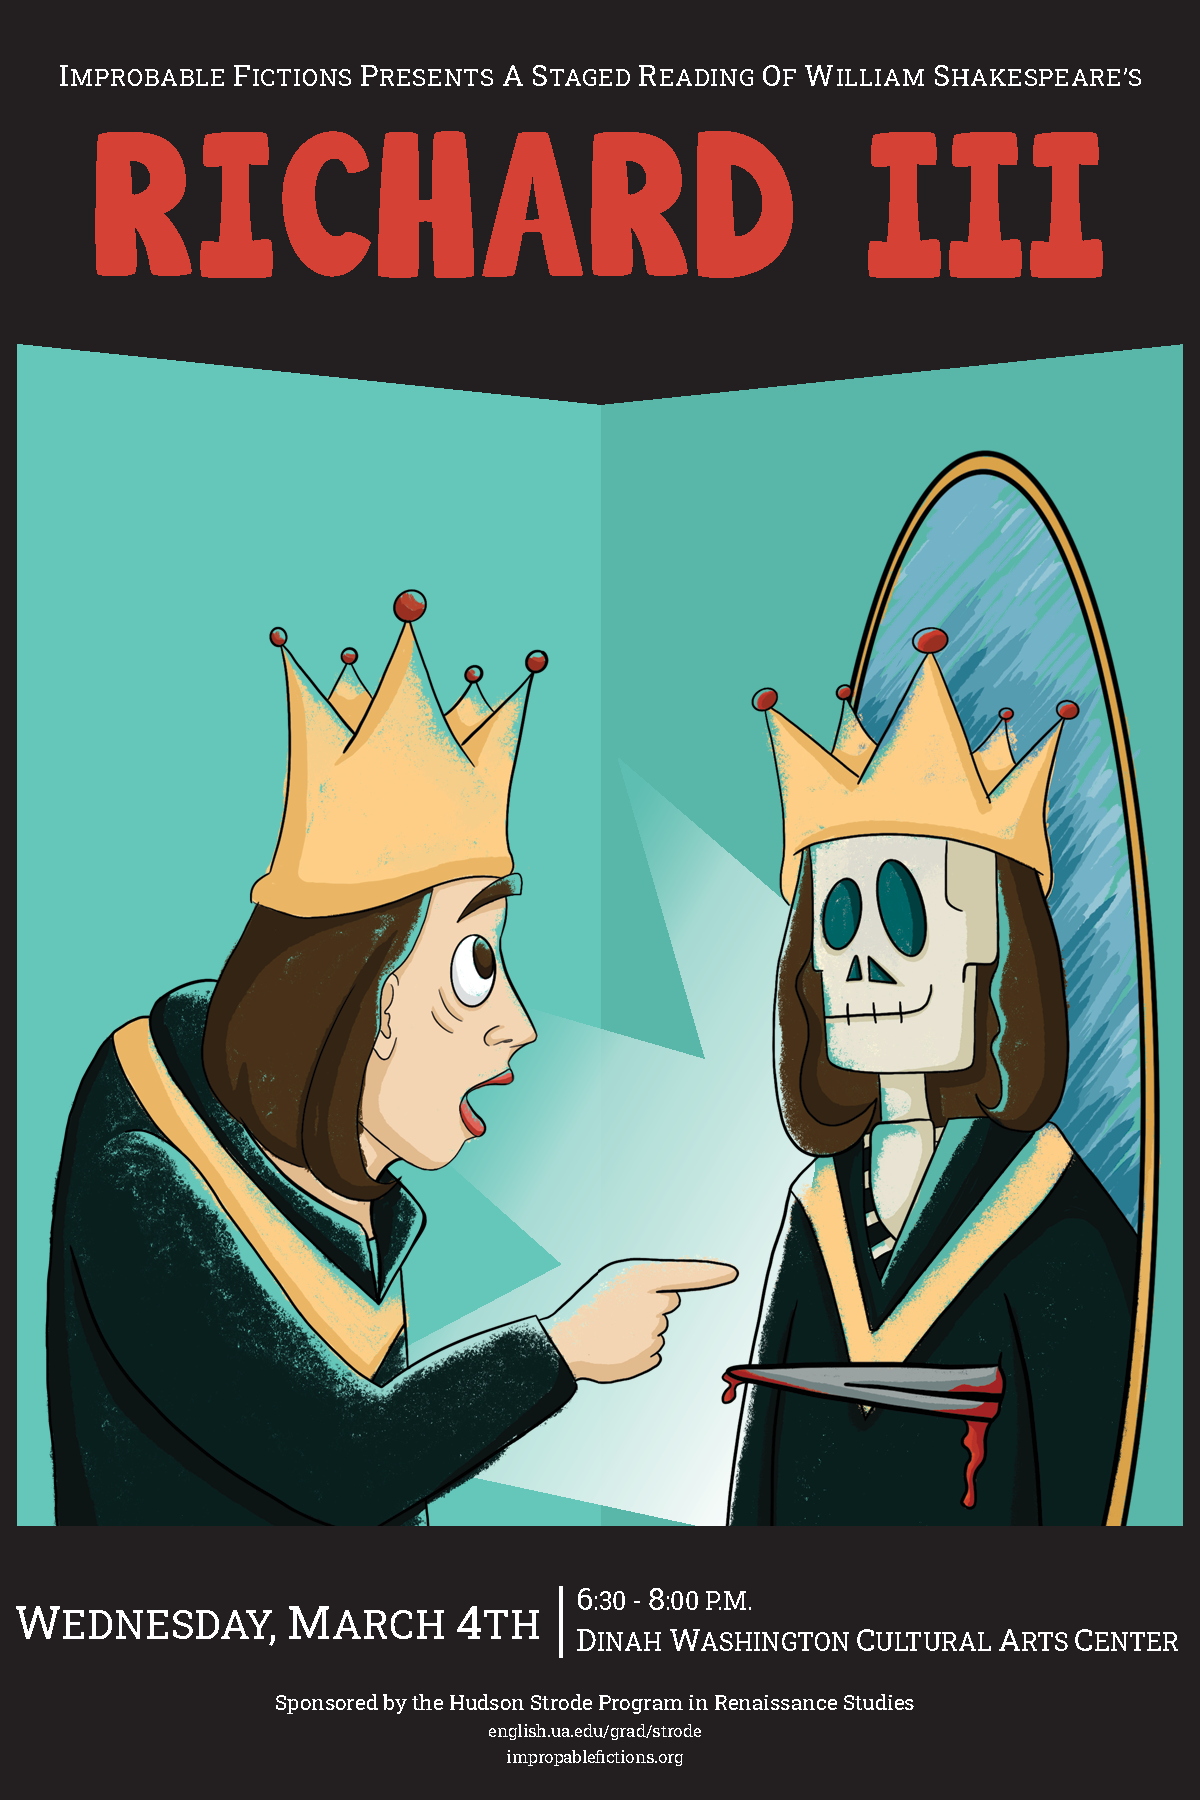 Cartoon of Richard III seeing a stabbed, skeletal version of himself in a mirror.